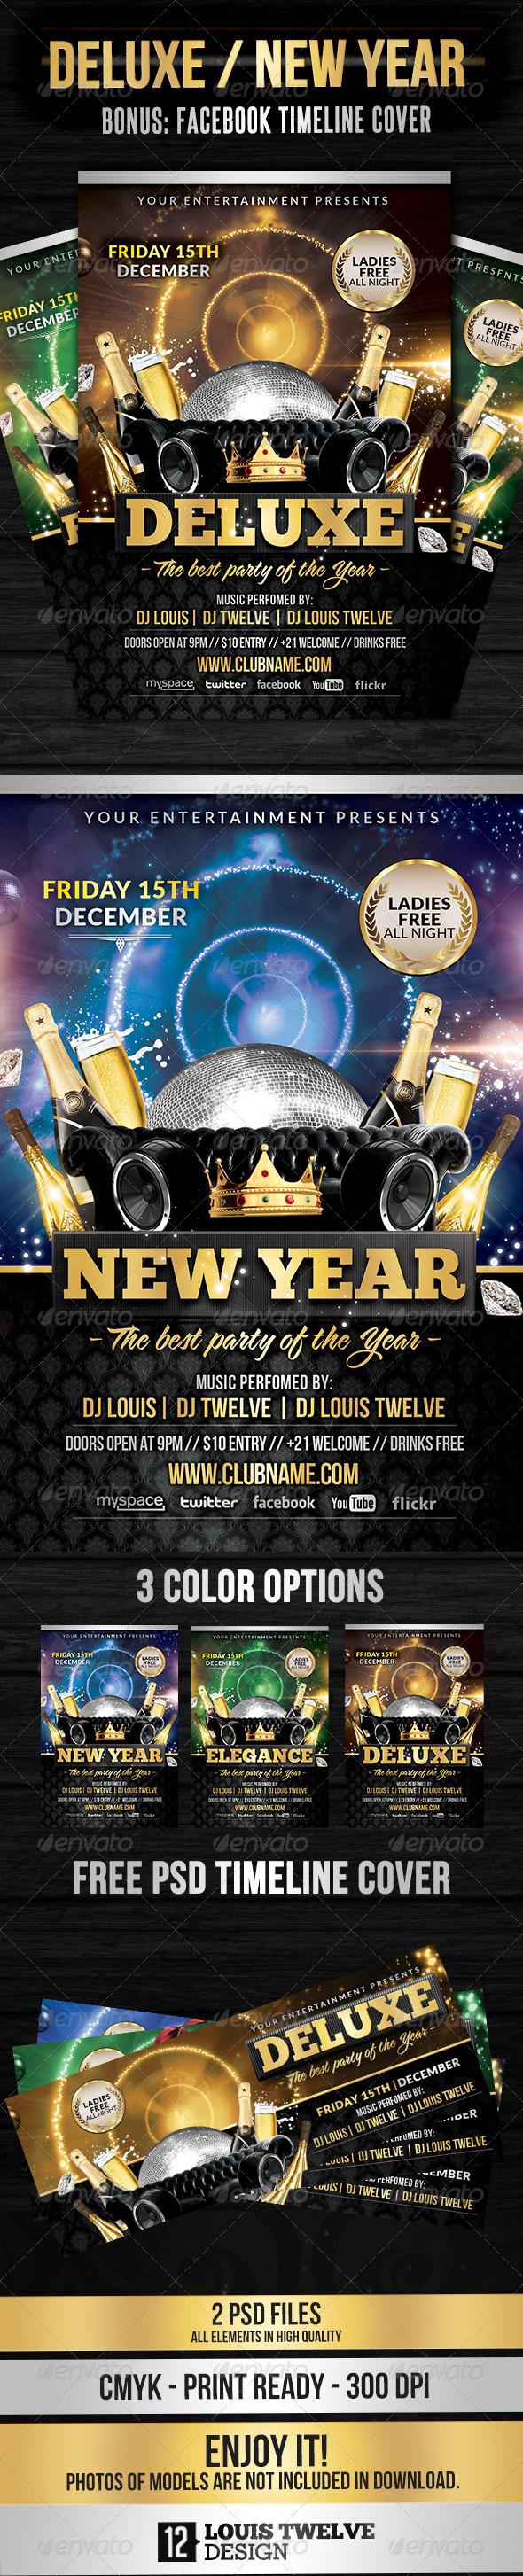 Deluxe / New Year | Flyer + FB Cover - Clubs & Parties Events